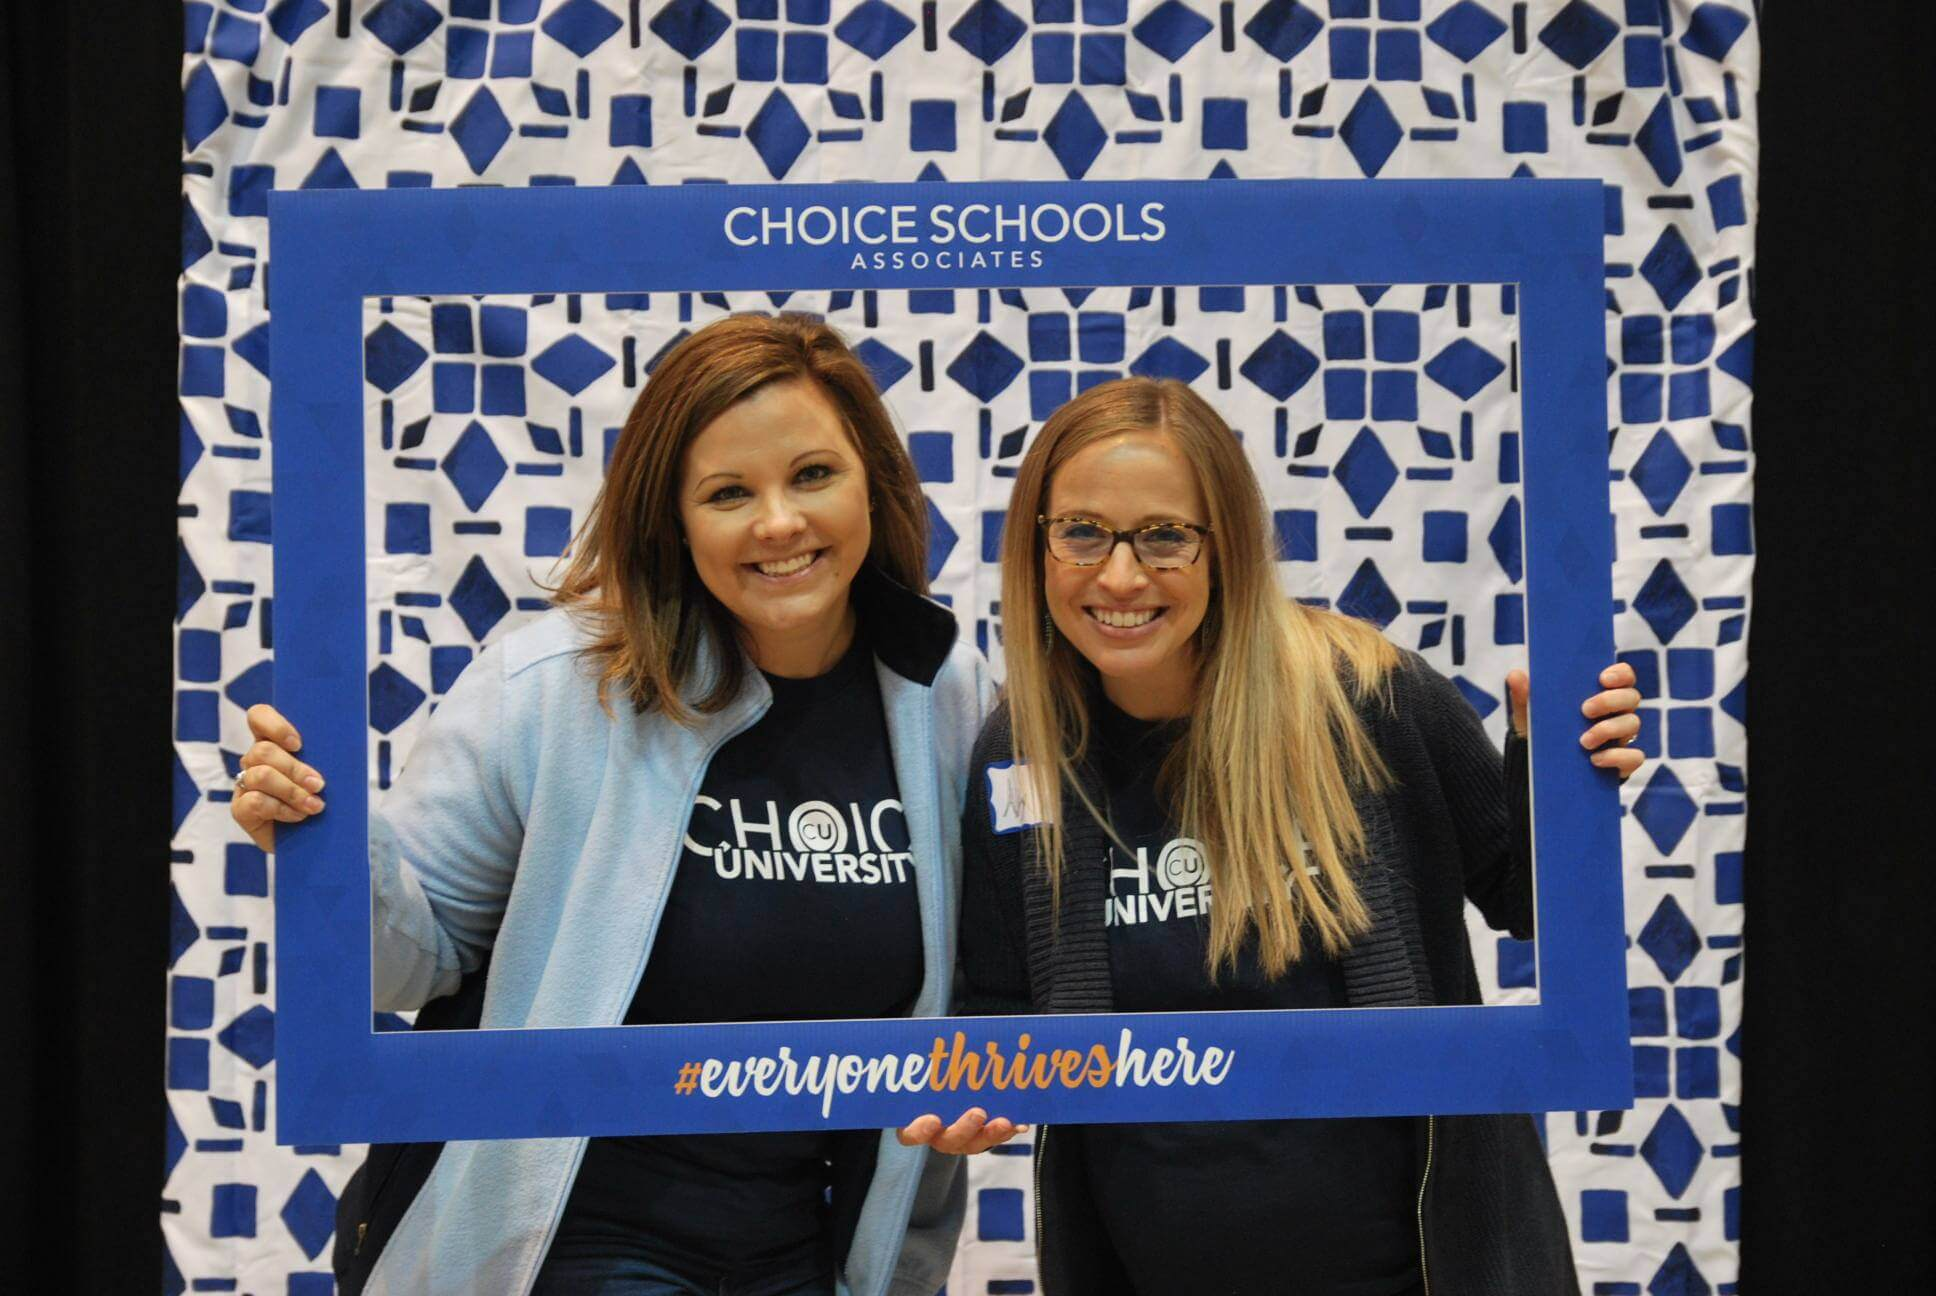 Choice U - Choice central office staff at photo booth